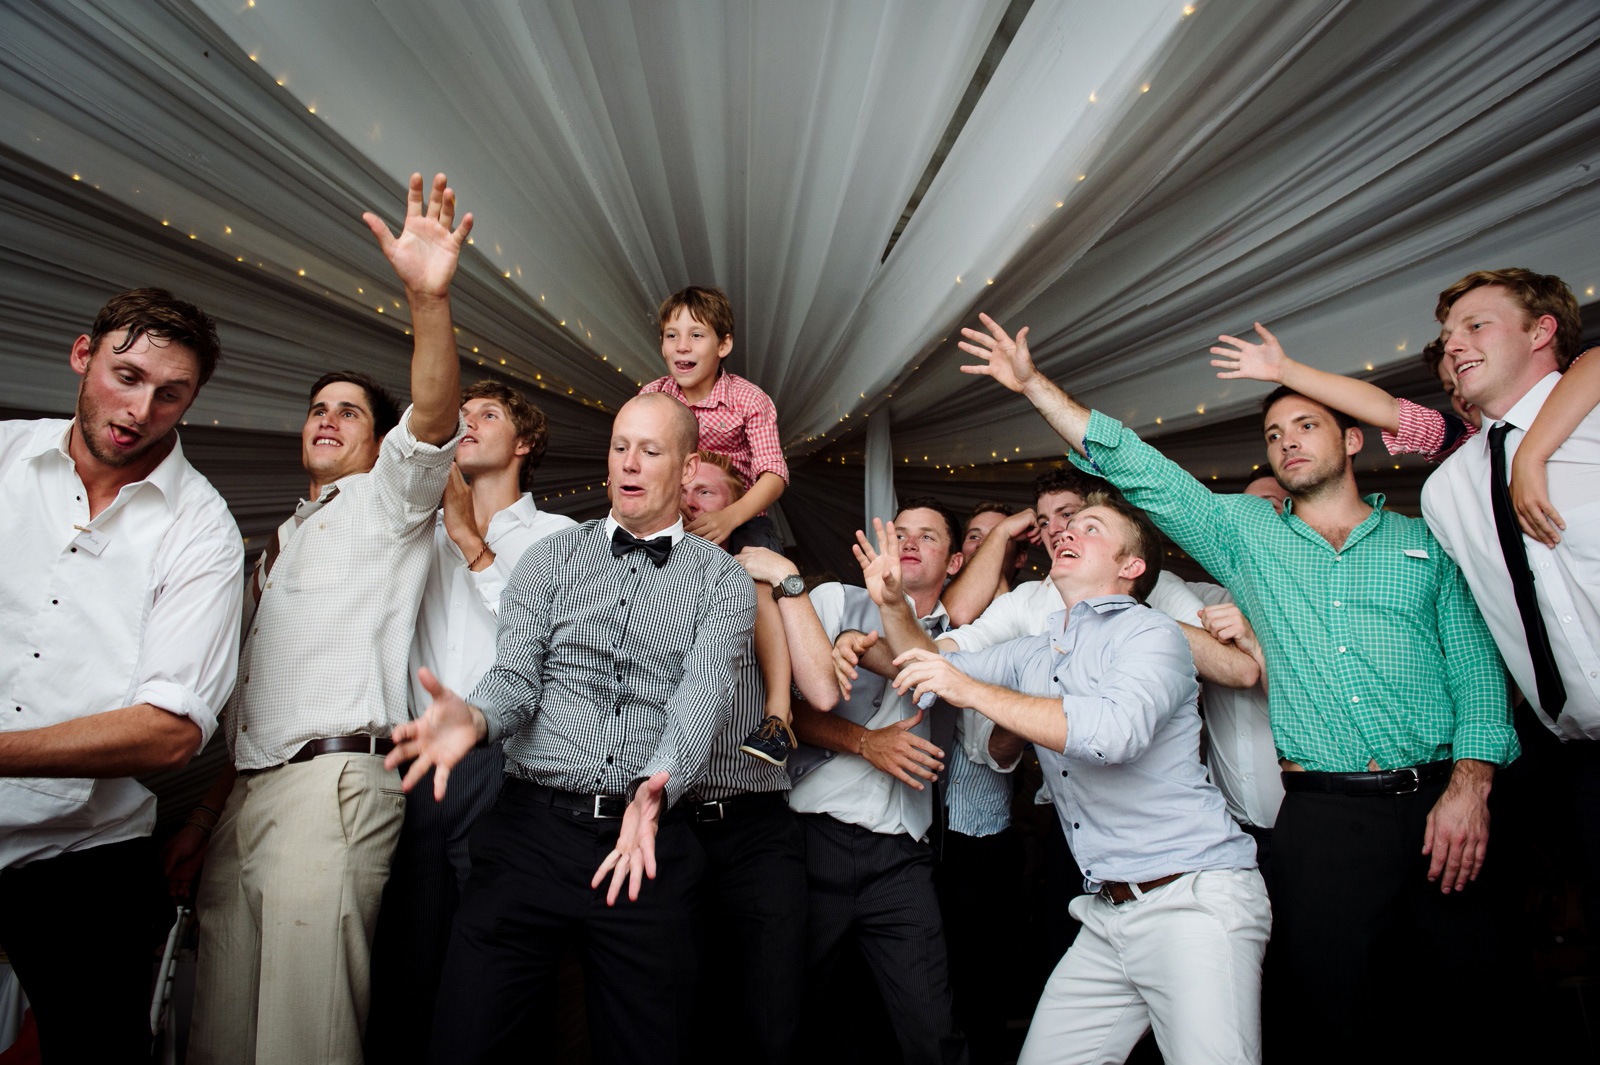 Garter toss at wedding